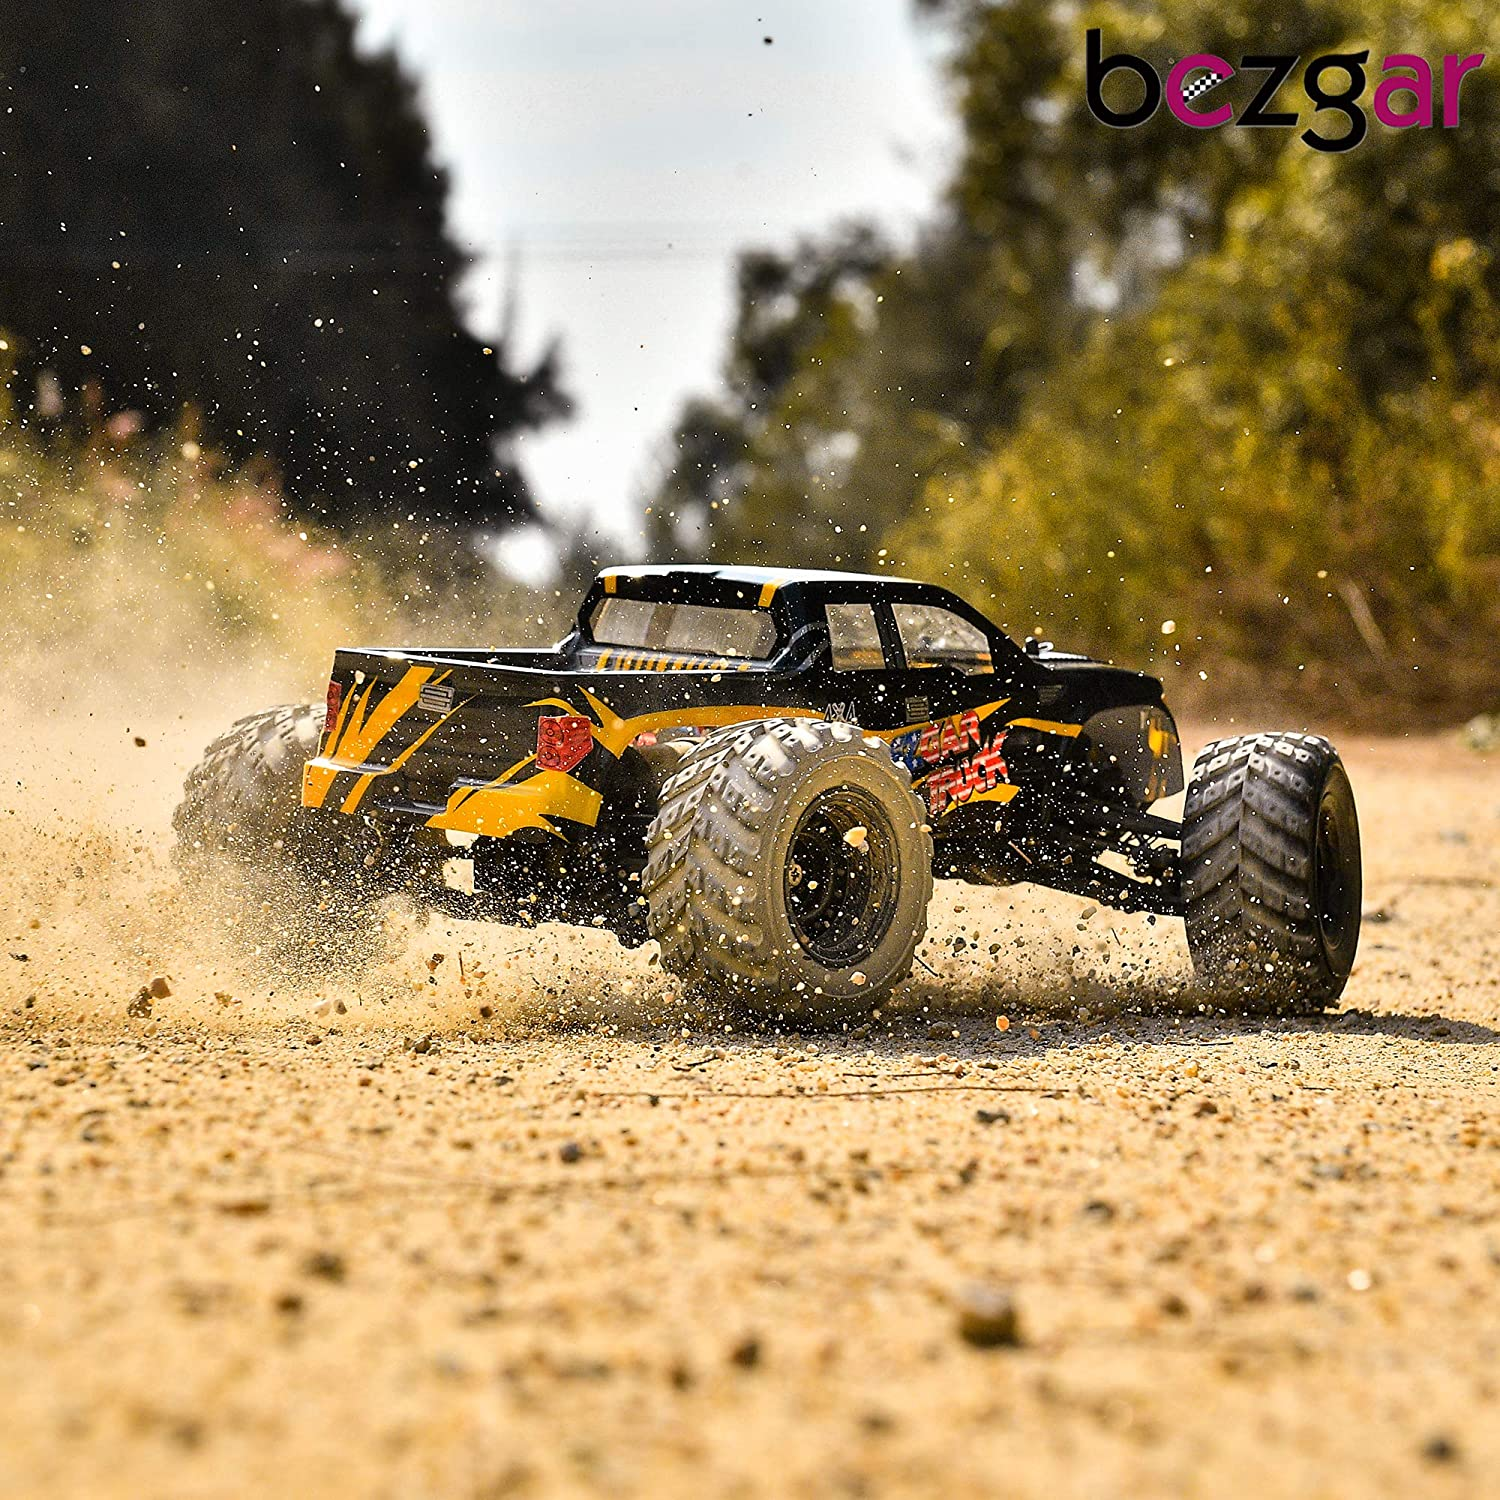 BEZGAR 1 Hobbyist Grade 1:12 Scale Remote Control Truck, 4WD High Speed 42 Km/h All Terrains Electric Toy Off Road RC Monster Vehicle Car Crawler with 2 Rechargeable Batteries for Boys Kids and Adults: Toys & Games